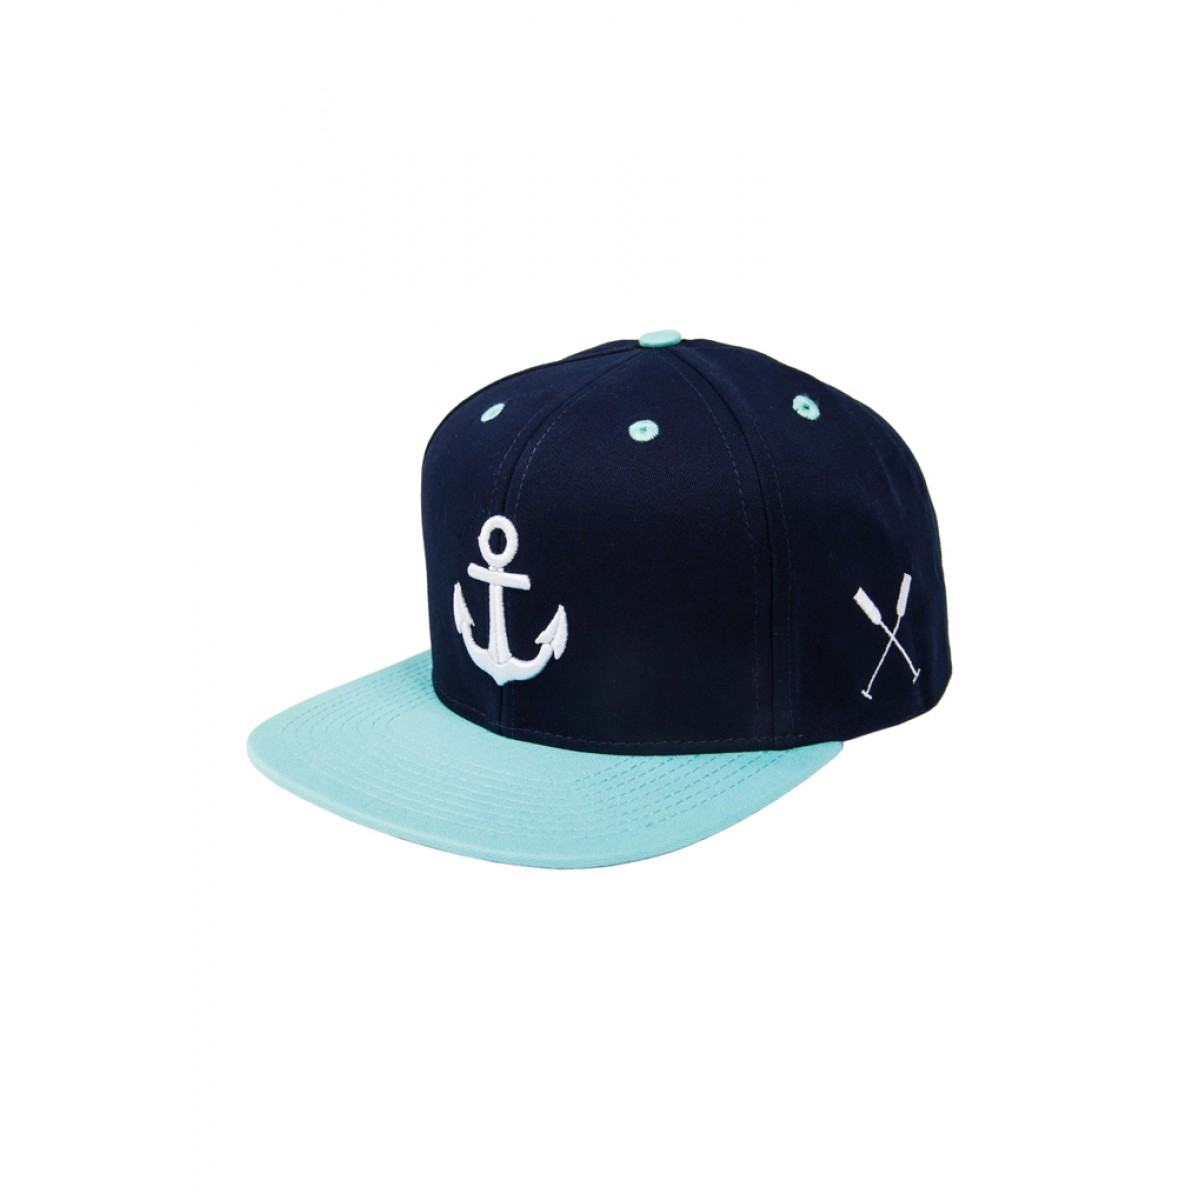 "HOME IS WHERE YOUR HEART IS. – Anker Snapback Cap ""Wonderland"" (NAVY BLUE/MINT)"